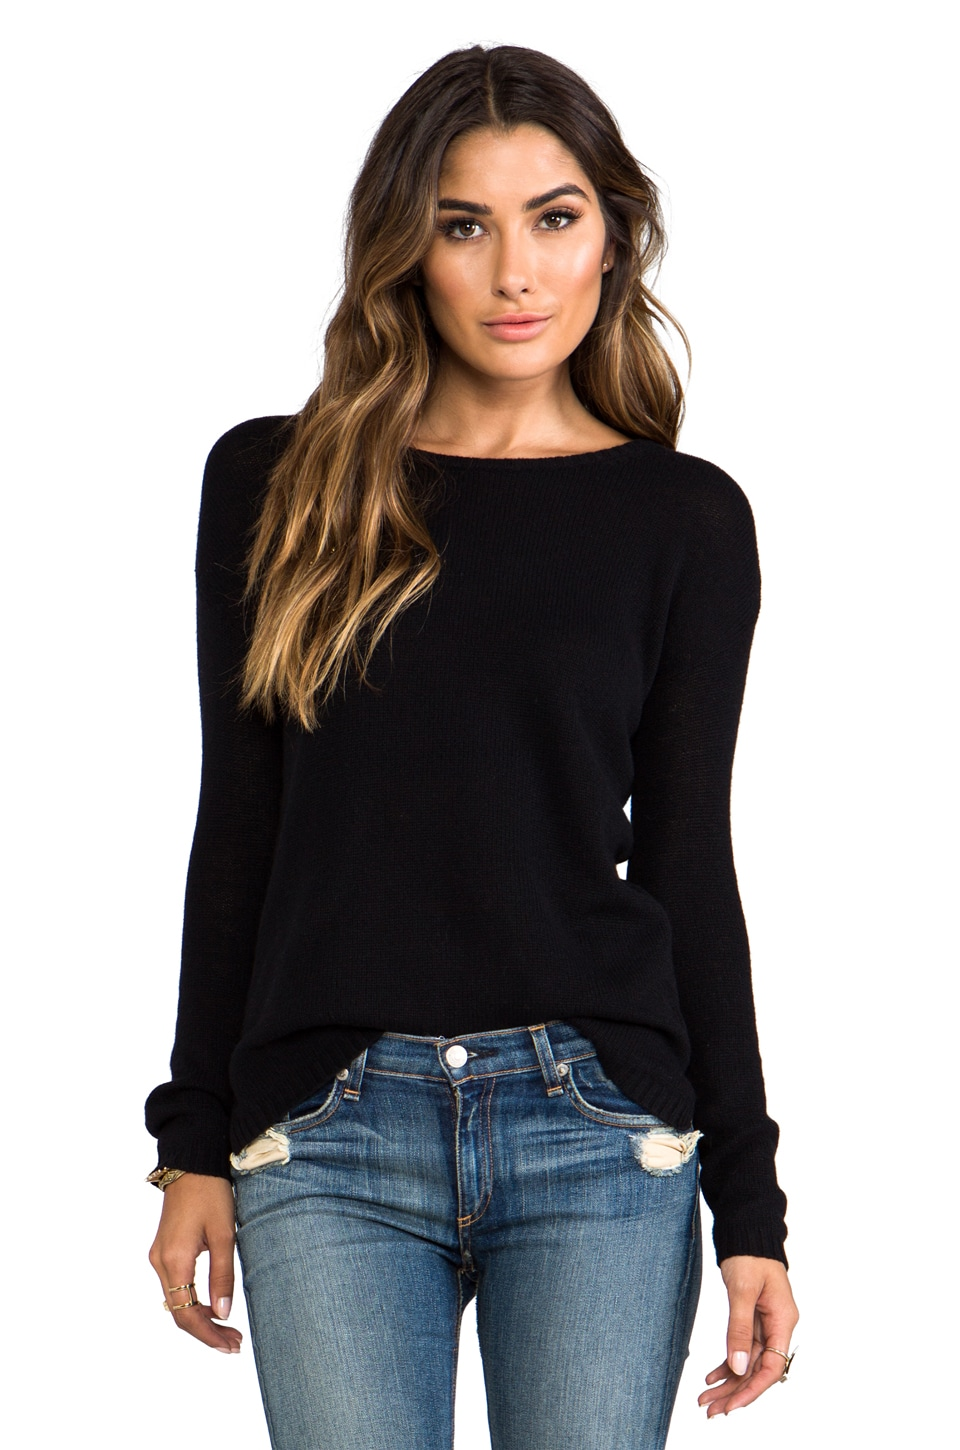 Autumn Cashmere Loose GG Hi Low Crew in Black